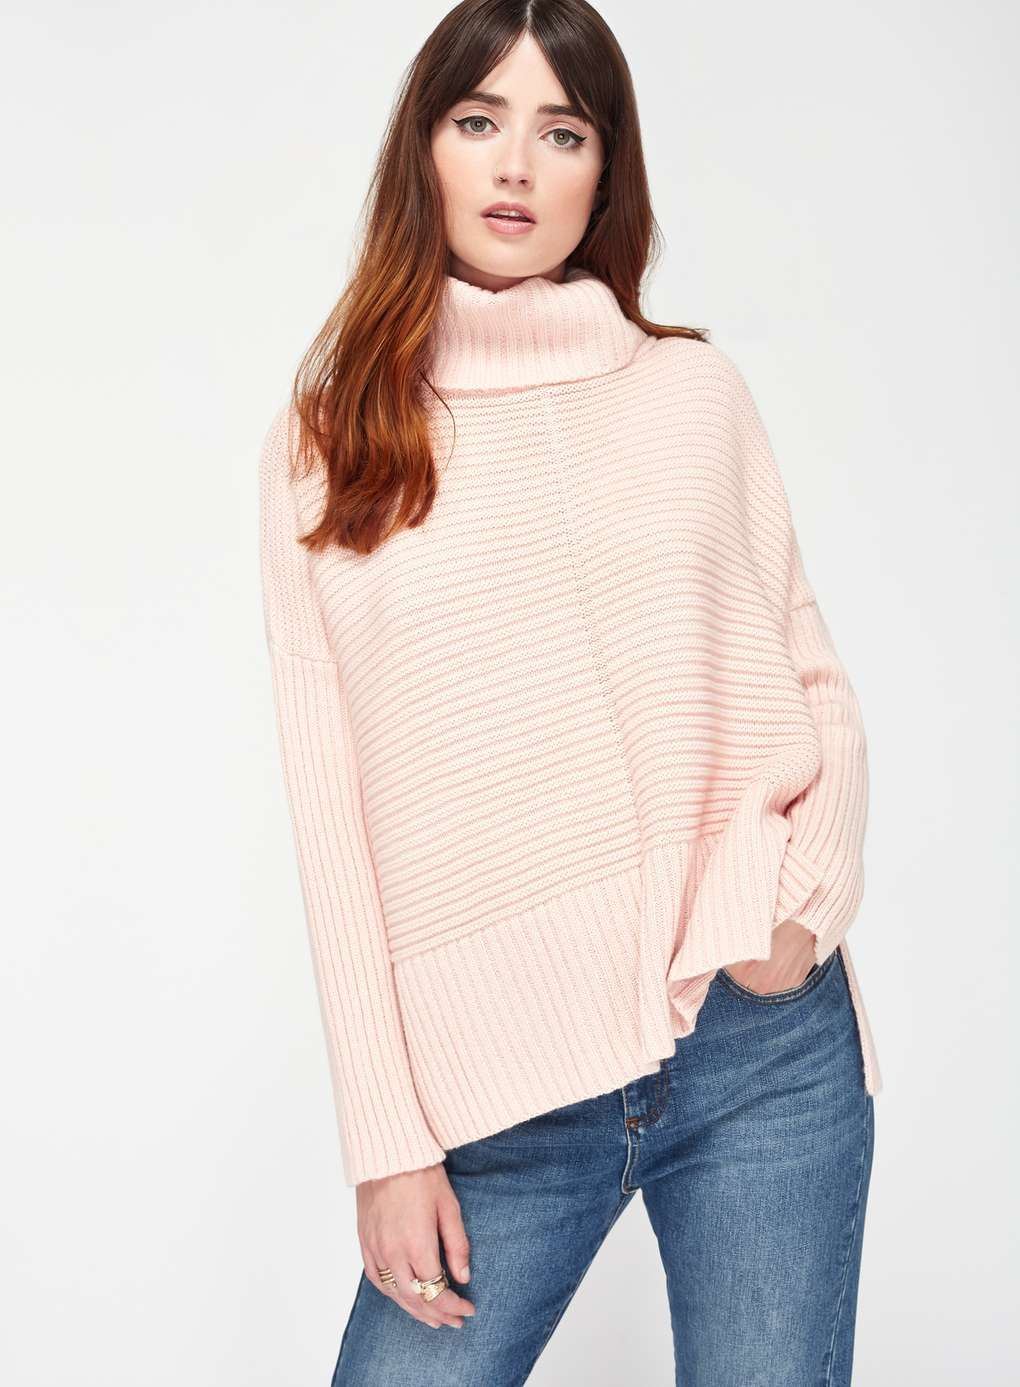 Miss Selfridge Clothing Pink Europe Chunky Tops Knitted Jumper qY1X7U